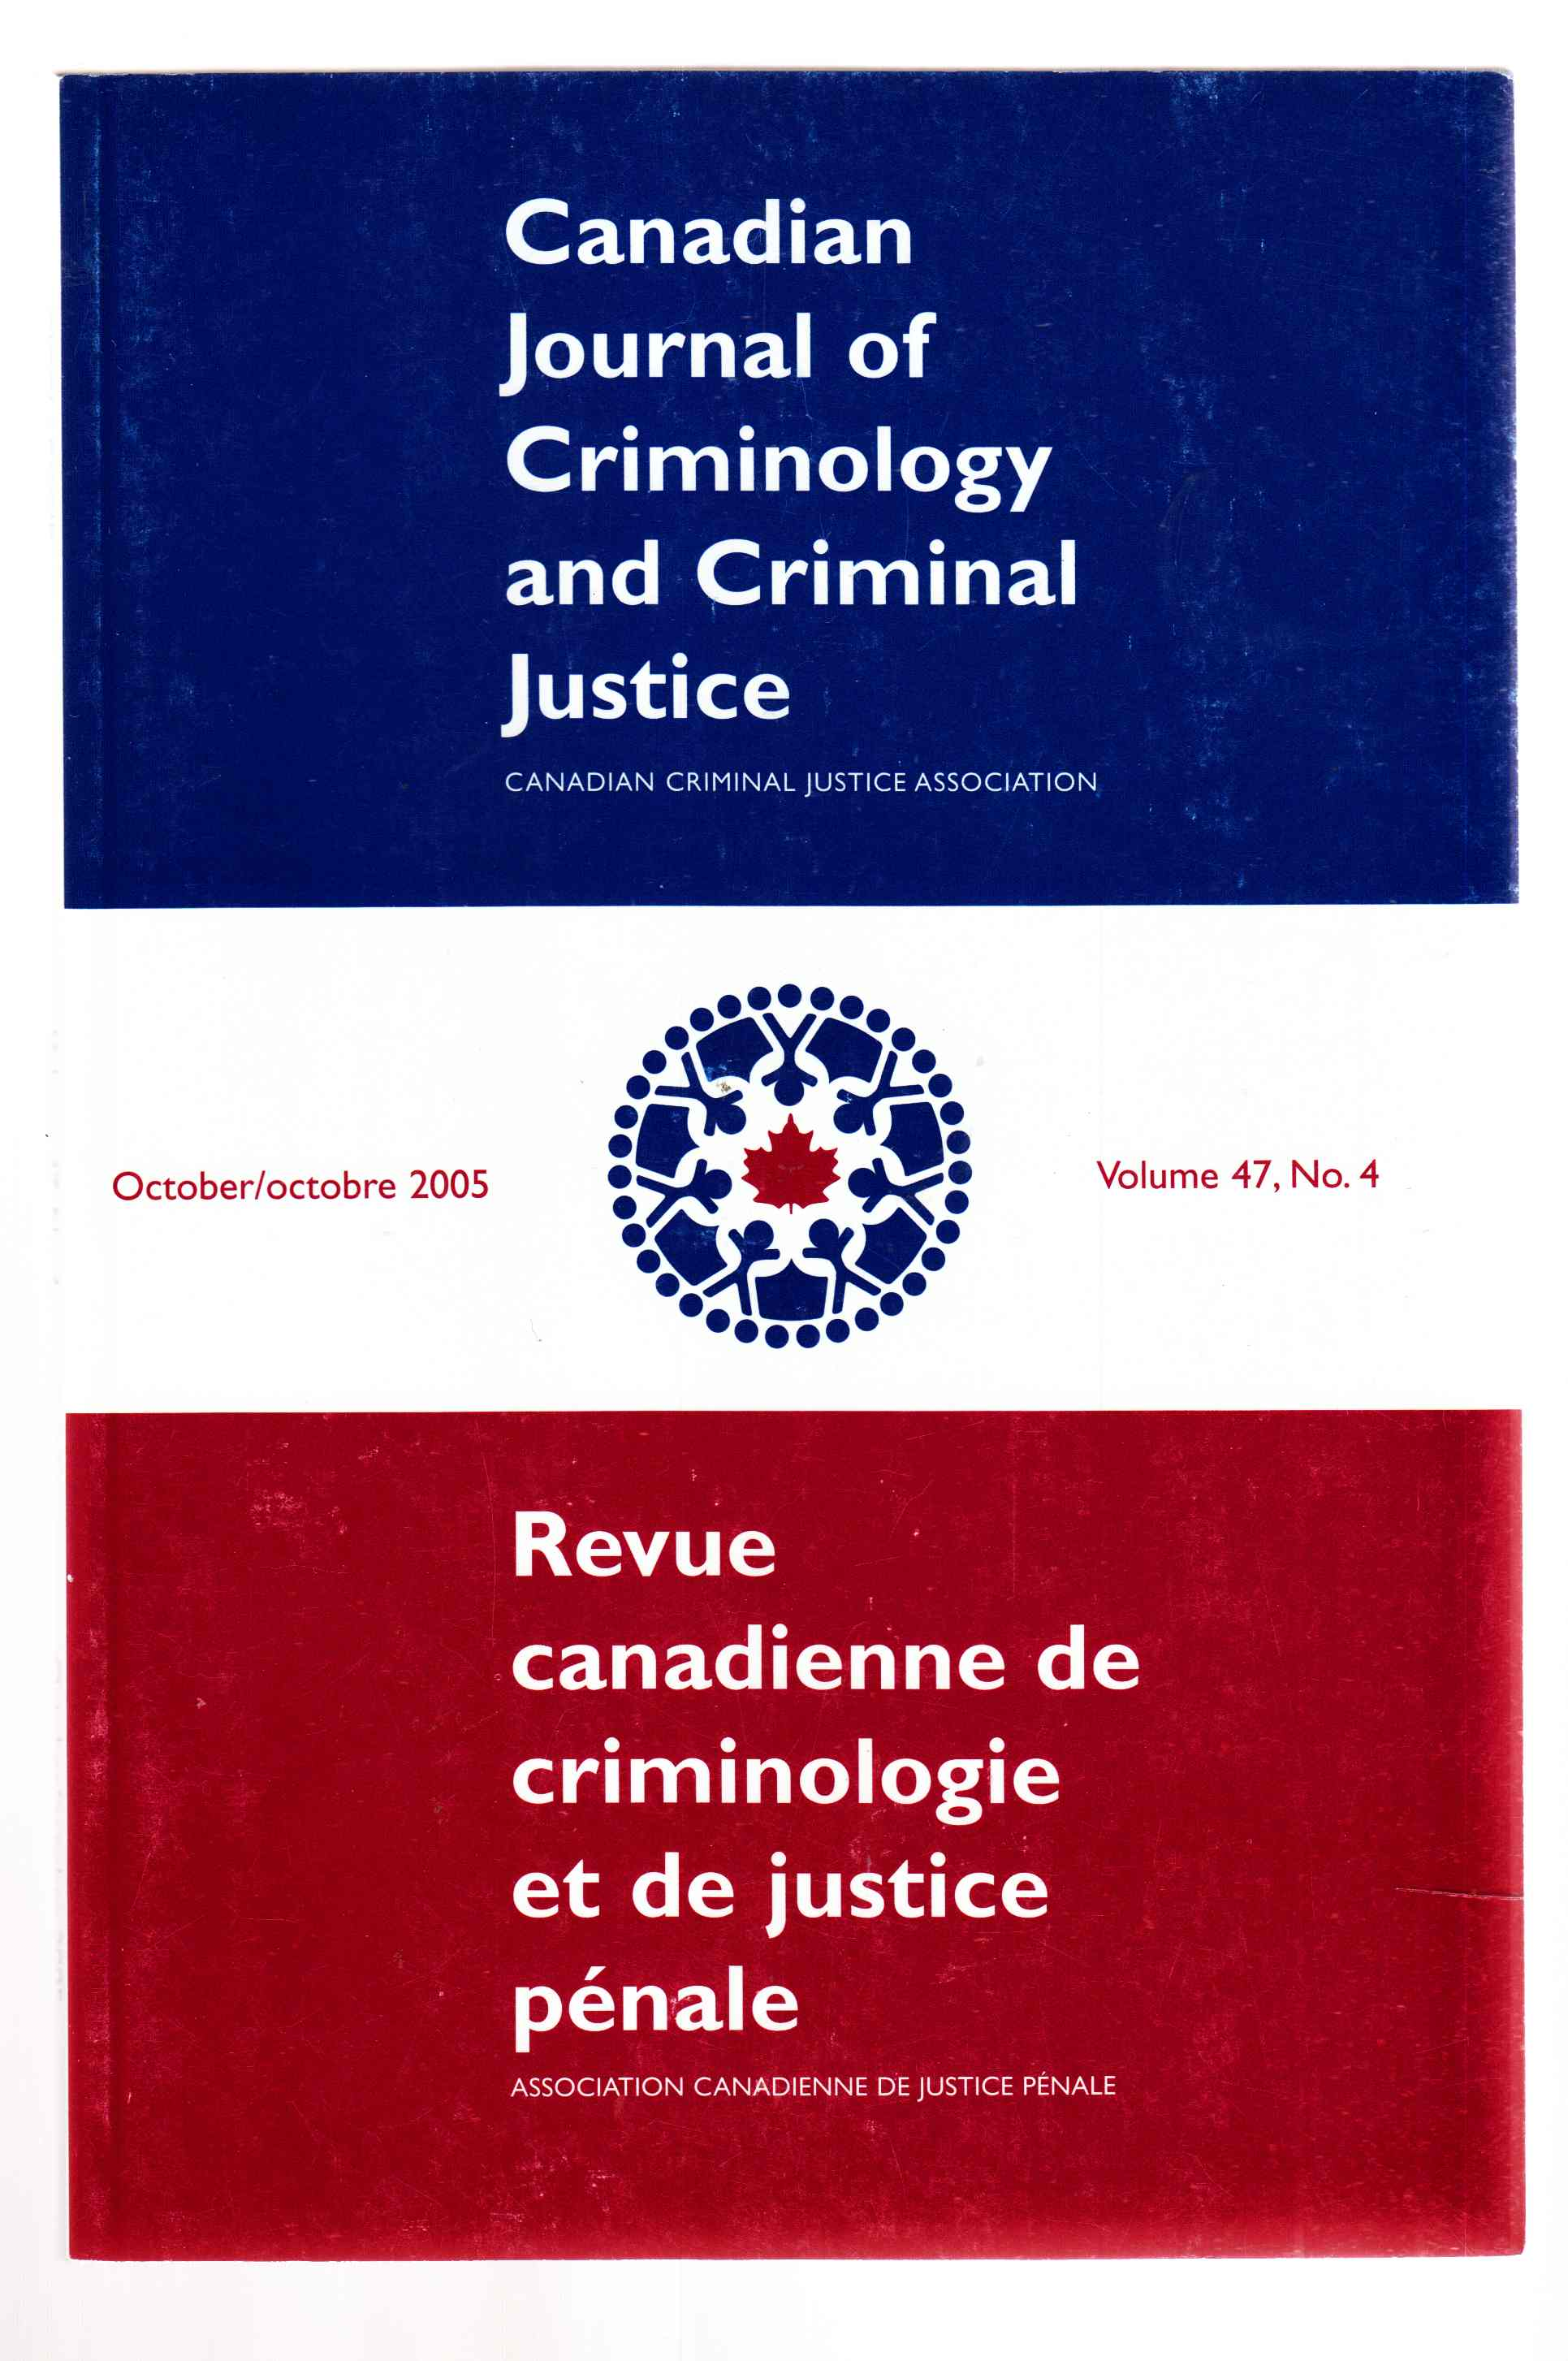 Image for Canadian Journal of Criminology and Criminal Justice October 2005 Volume 47, No. 4